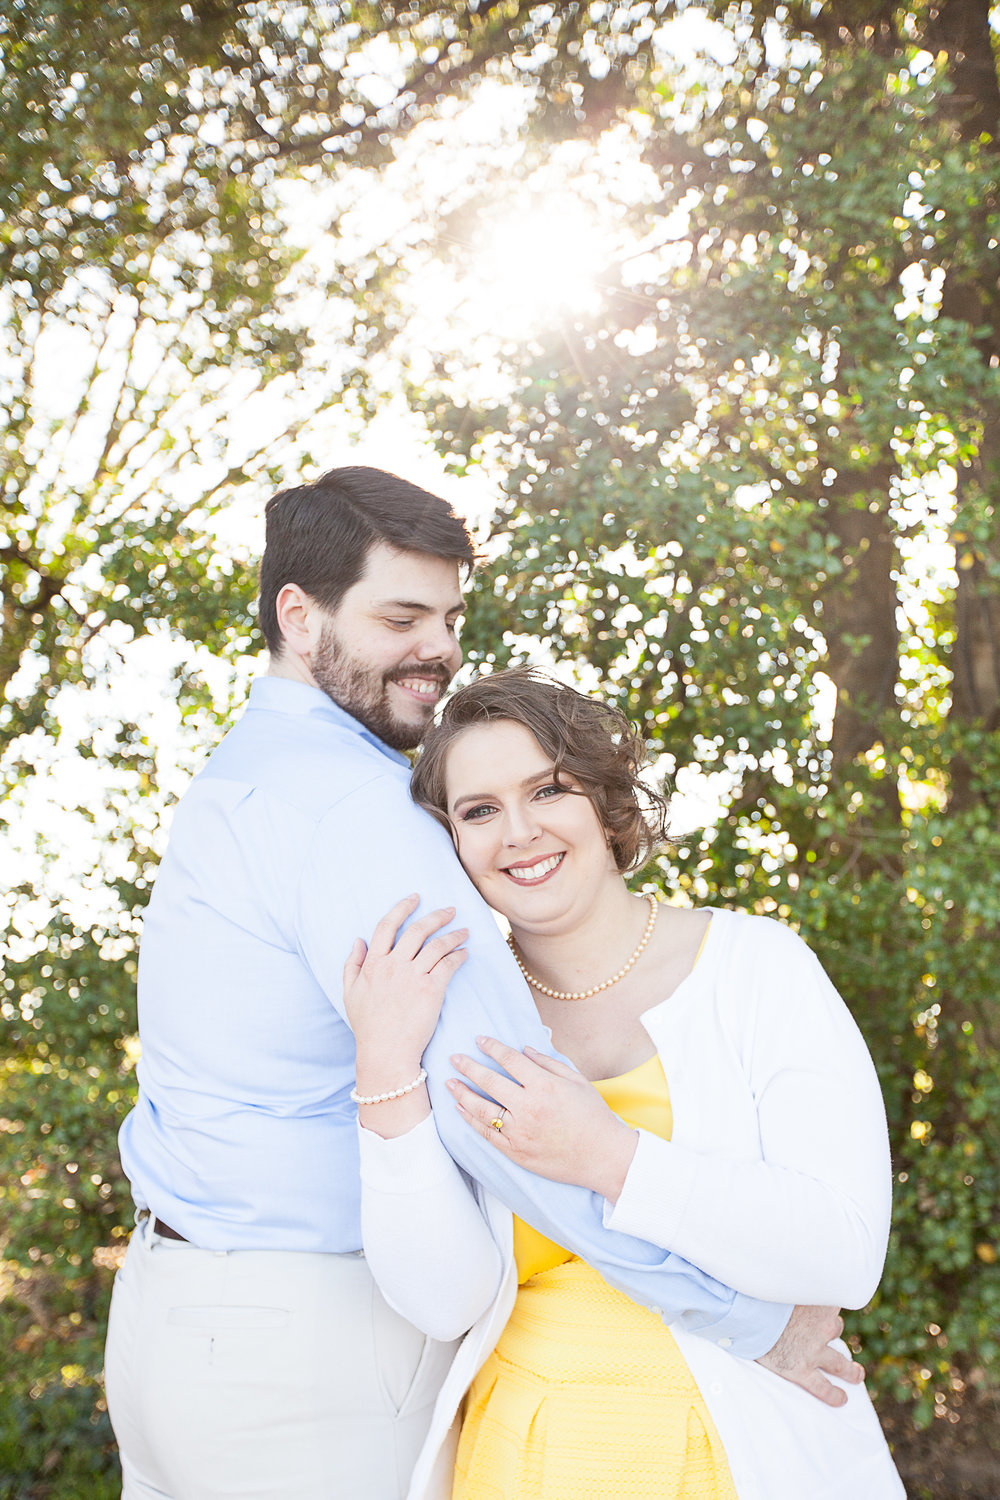 Kathryn-Stephen-Engagement-Kim-Pham-Clark-Photography-08.jpg